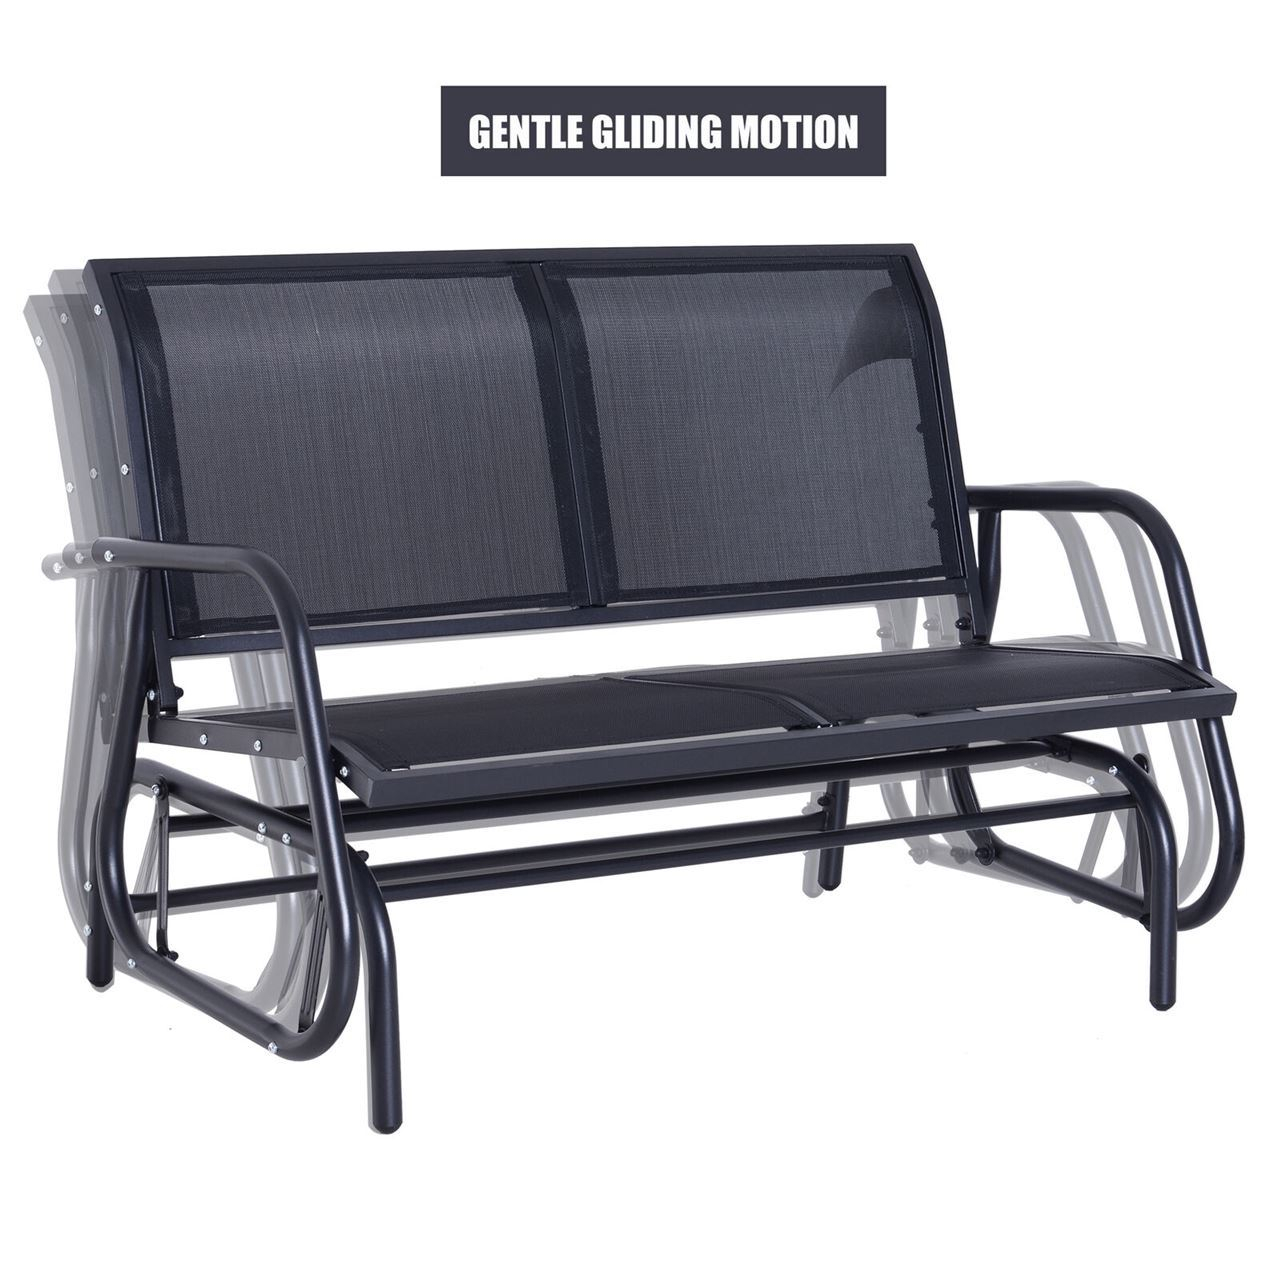 Outdoor Patio Swing Glider Bench Chair – Dark Gray Pertaining To Black Outdoor Durable Steel Frame Patio Swing Glider Bench Chairs (Photo 12 of 25)